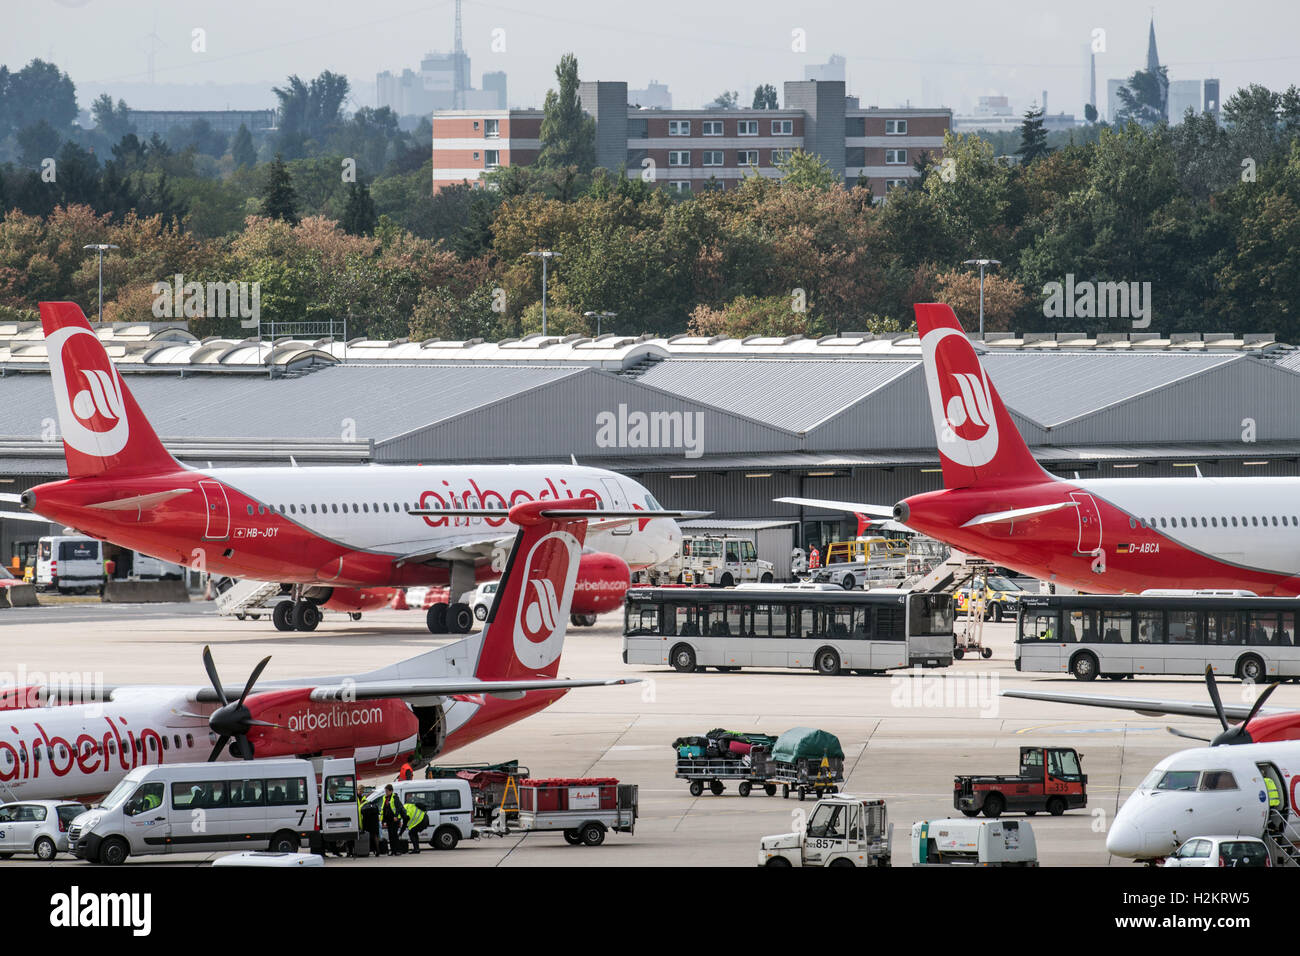 Airplanes of the airline Air Berlin can be seen at the airport in Duesseldorf, Germany, 29 September 2016. The financially - Stock Image